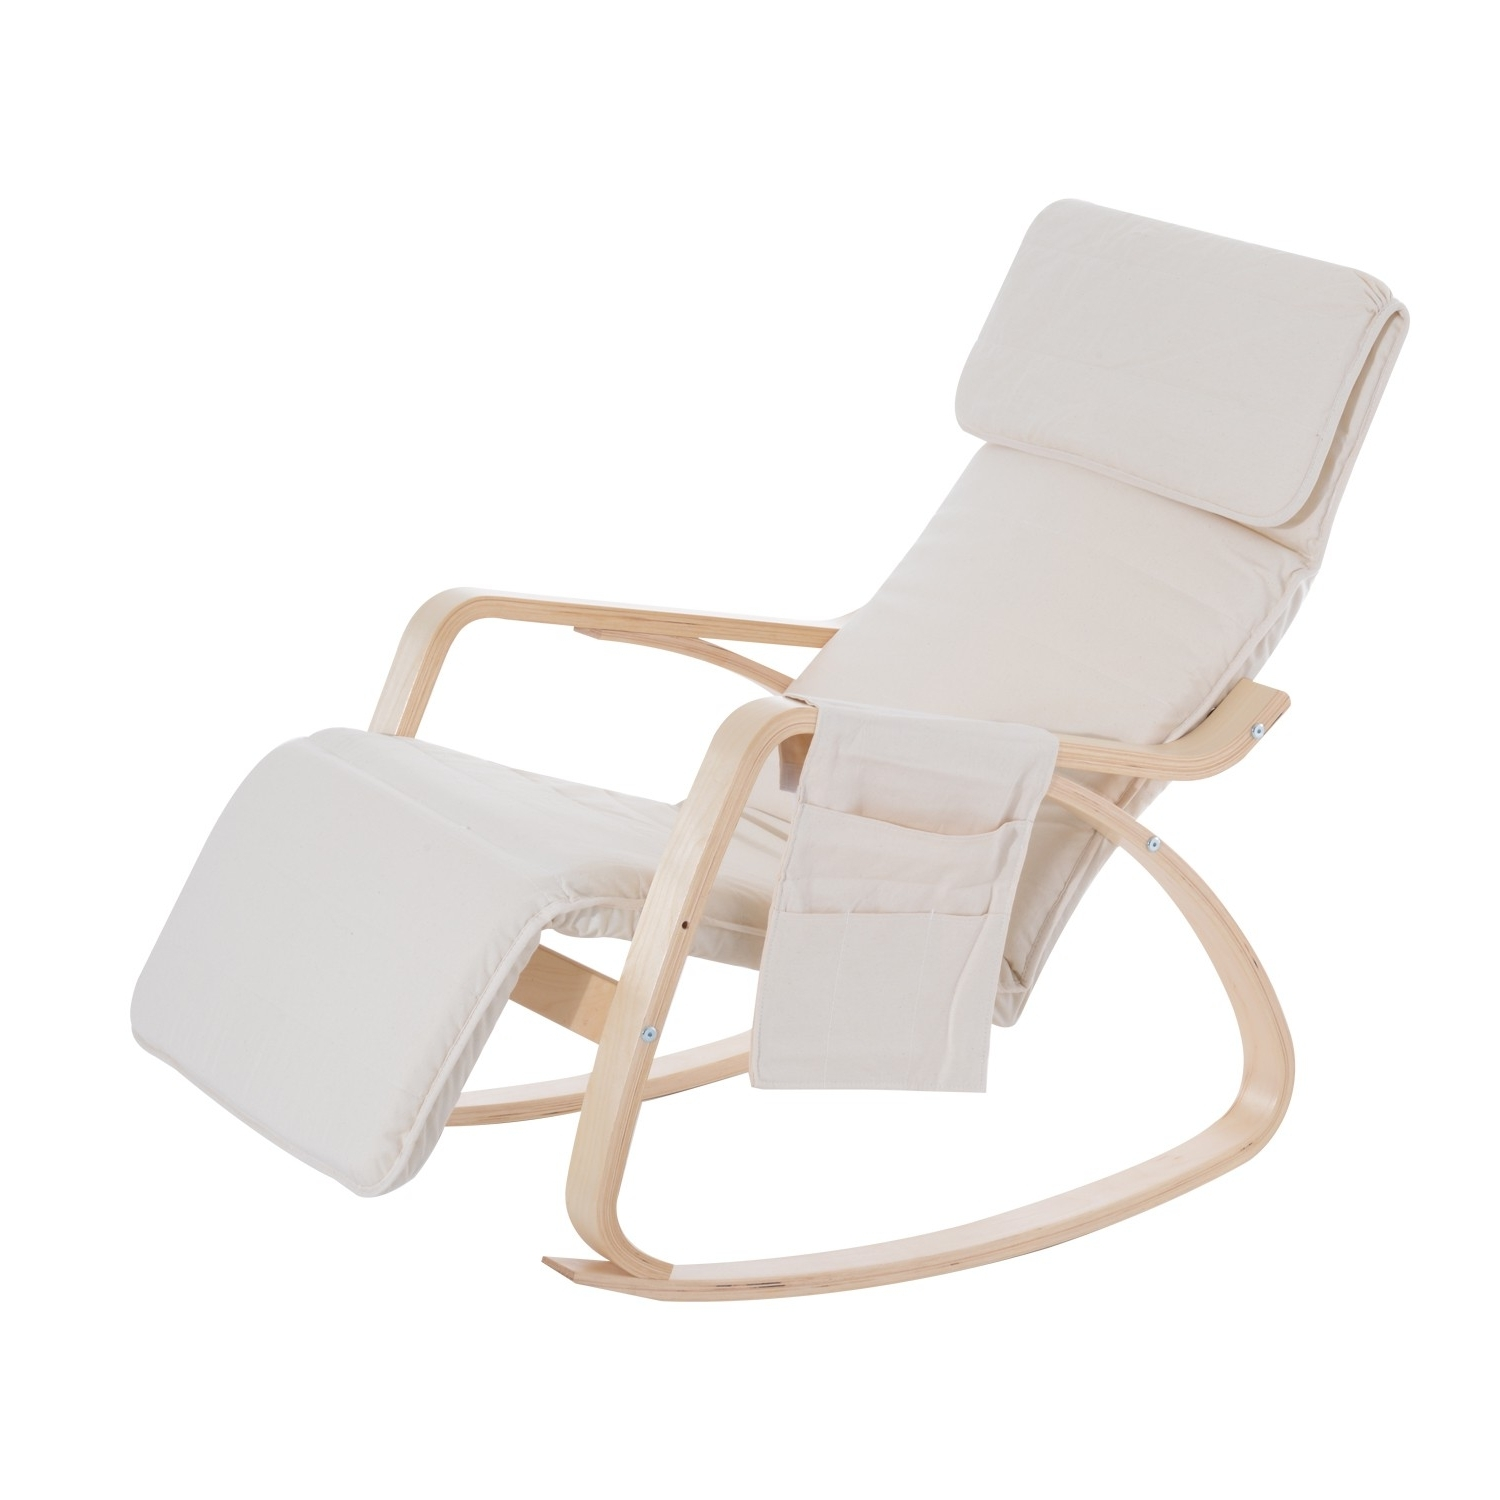 Recent Homcom Rocking Chair W/adjustable Footrest & Side Pocket Beige Pertaining To Rocking Chairs With Footrest (View 9 of 15)